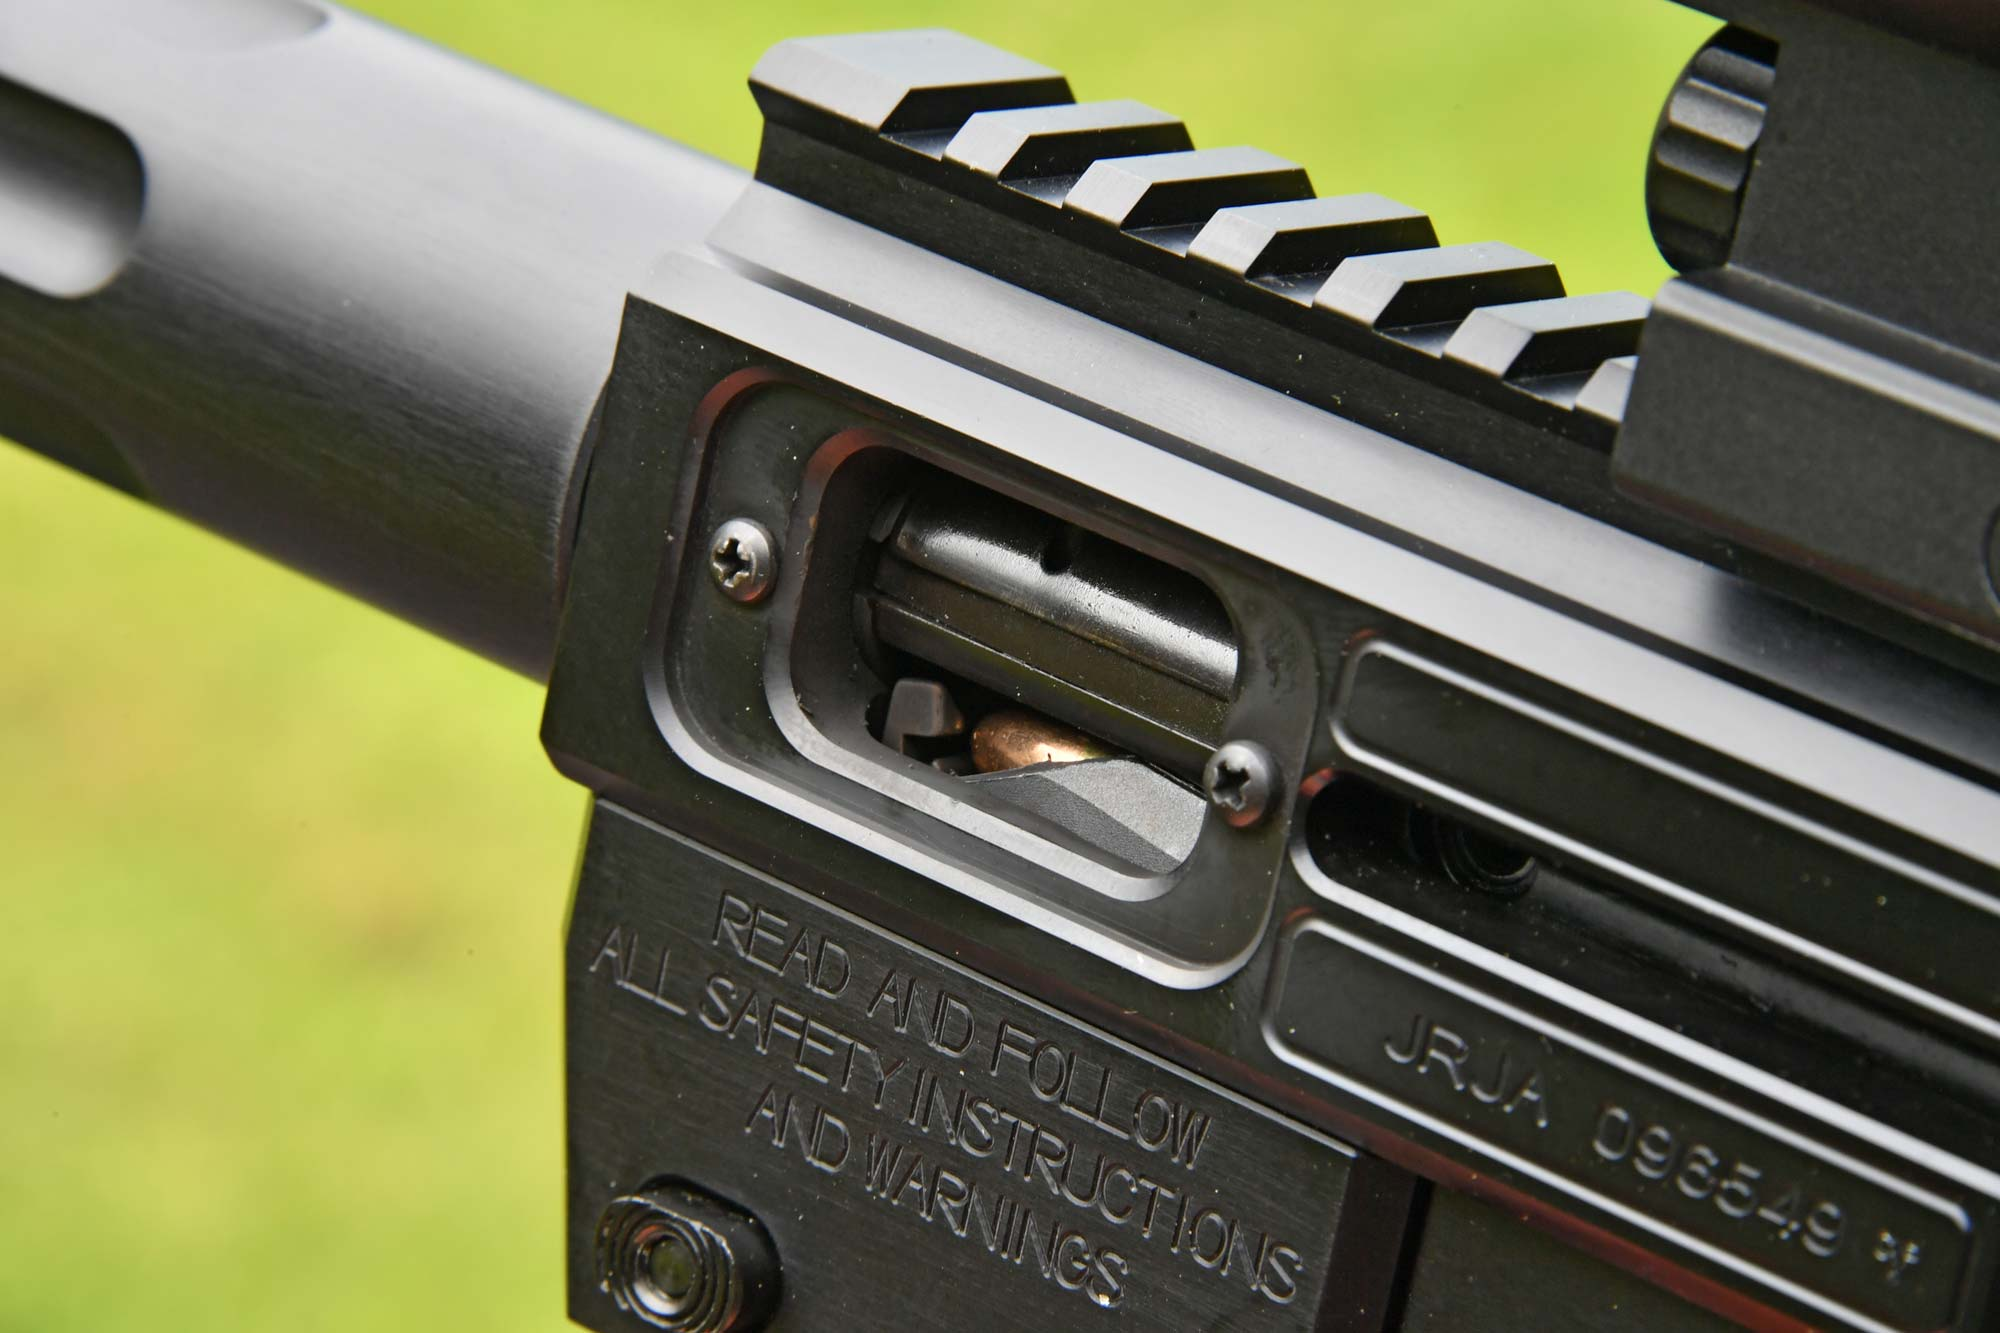 Gen3 Sporter pistol-caliber carbine by Just Right Carbines with the ejection port on the left